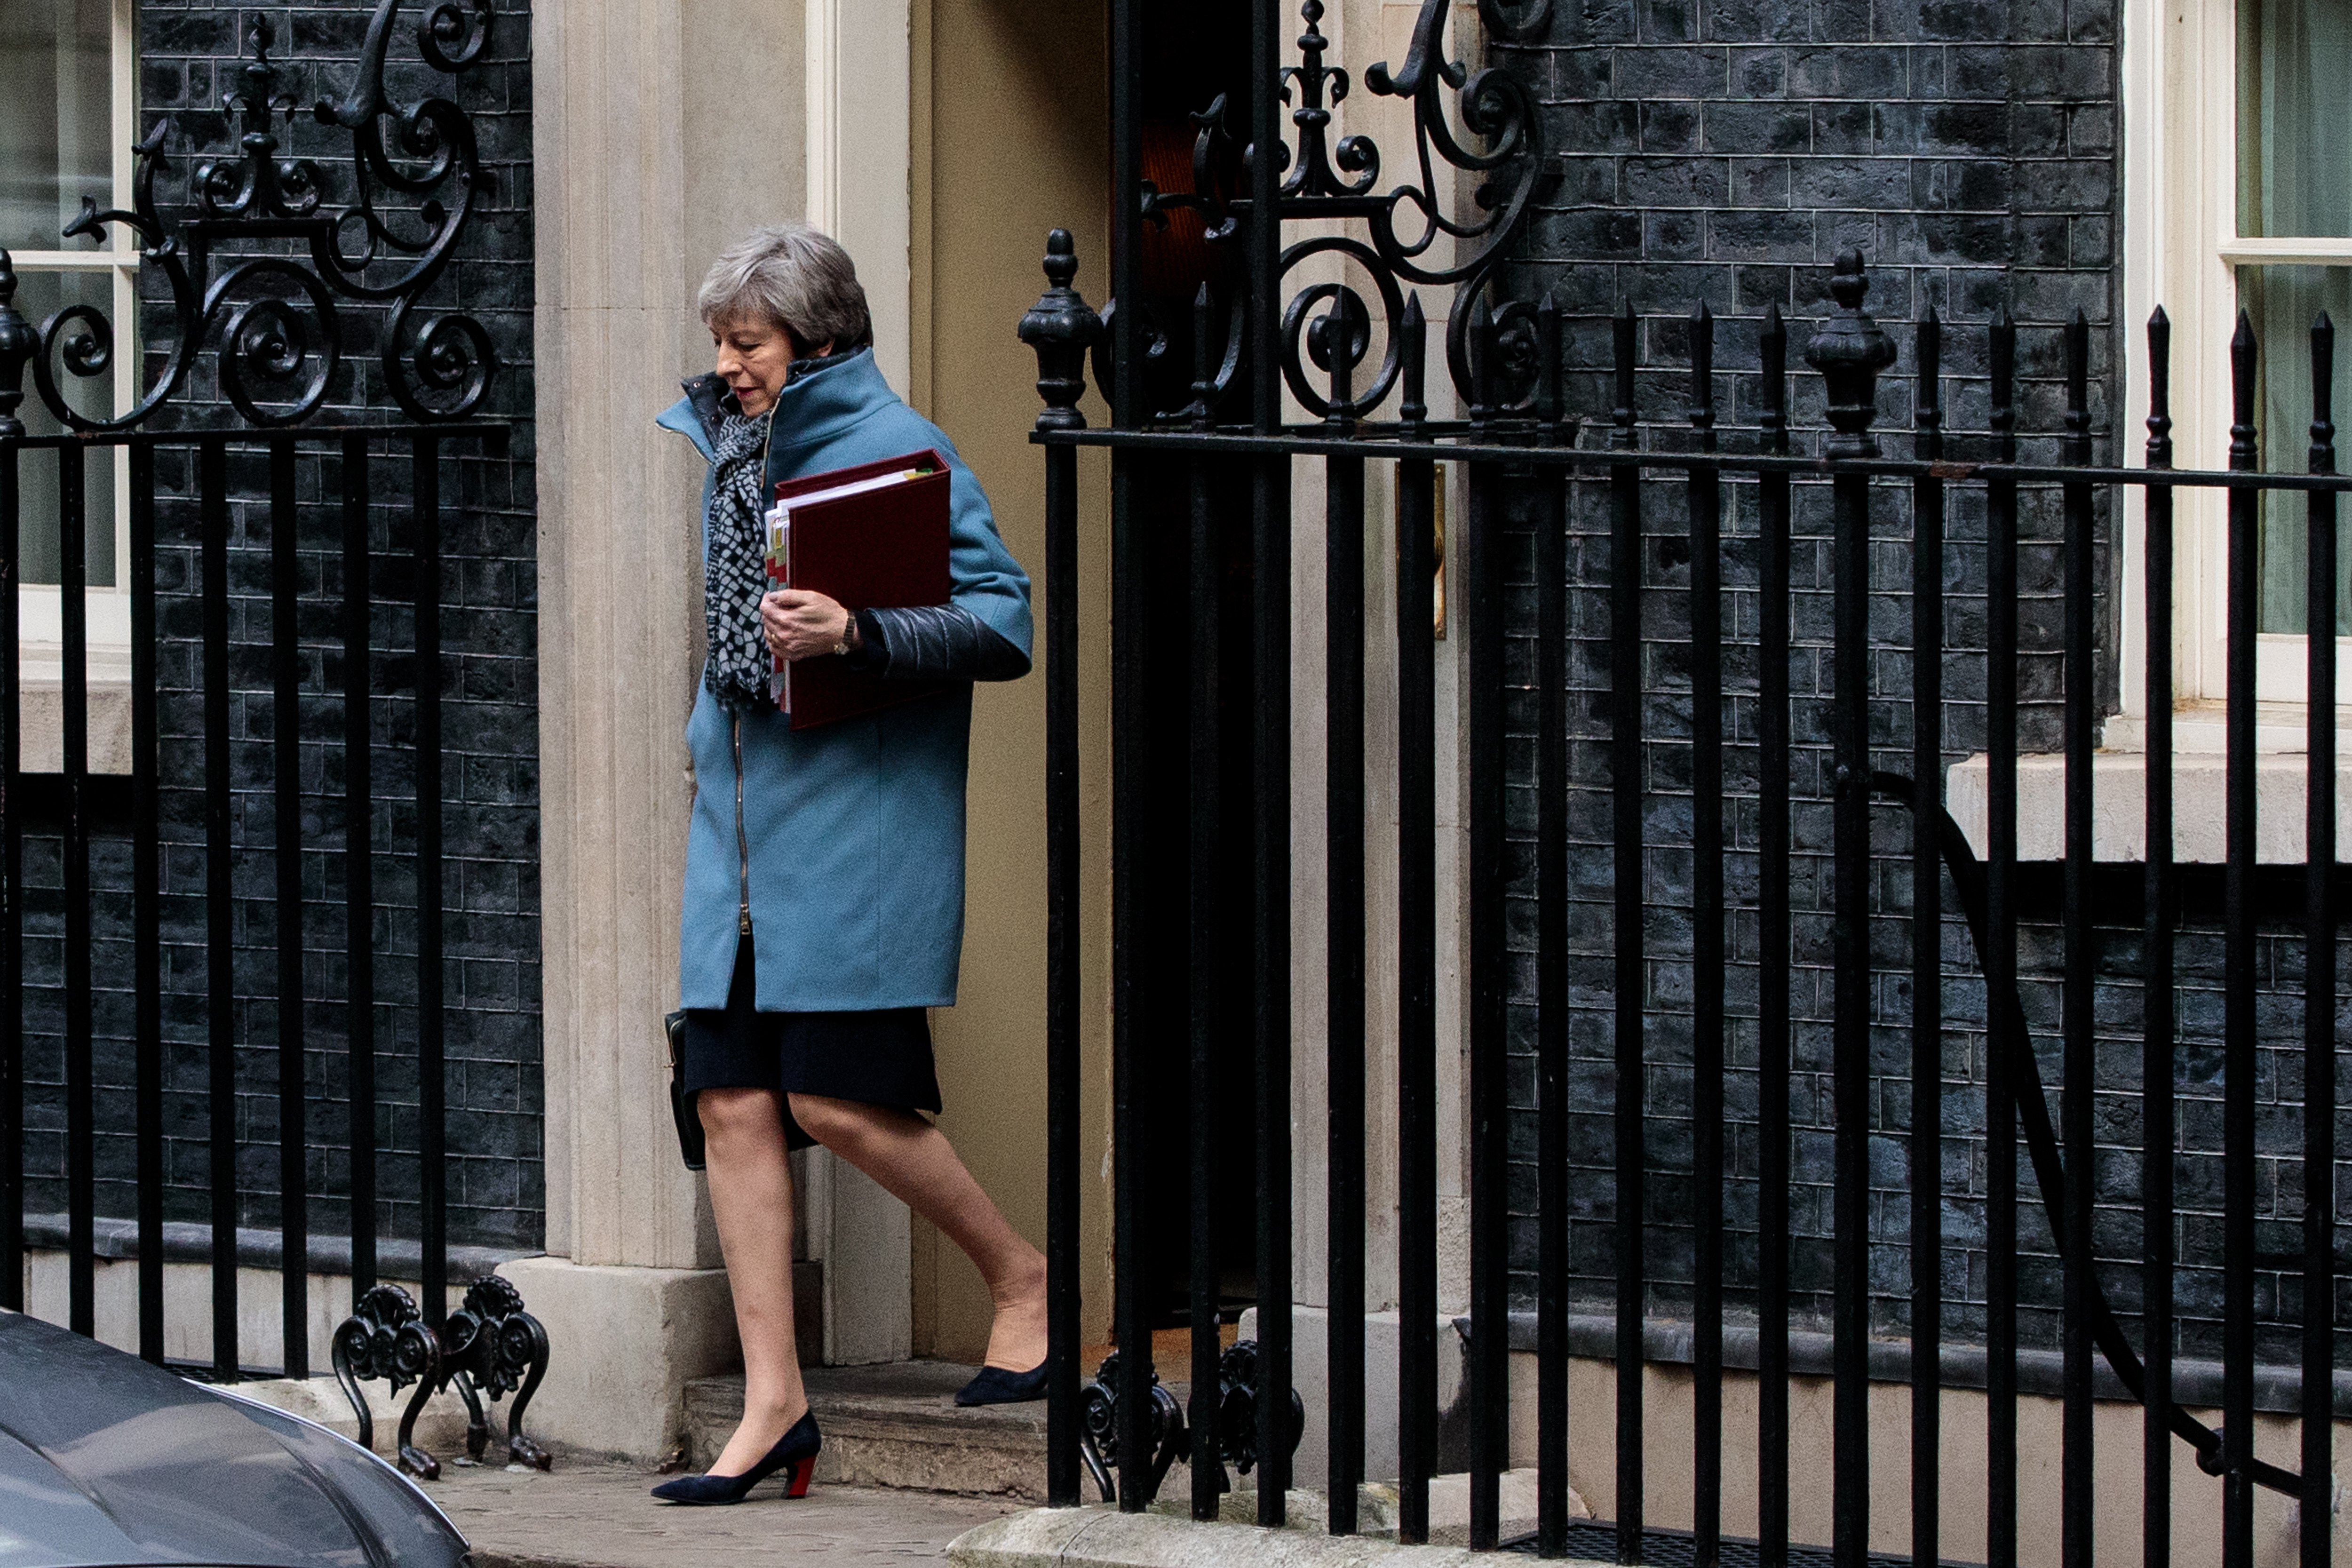 British Prime Minister Theresa May leaves Number 10 Downing Street for Prime Minister's Question in Parliament on April 3, 2019 in London, England. (Photo by Jack Taylor/Getty Images)